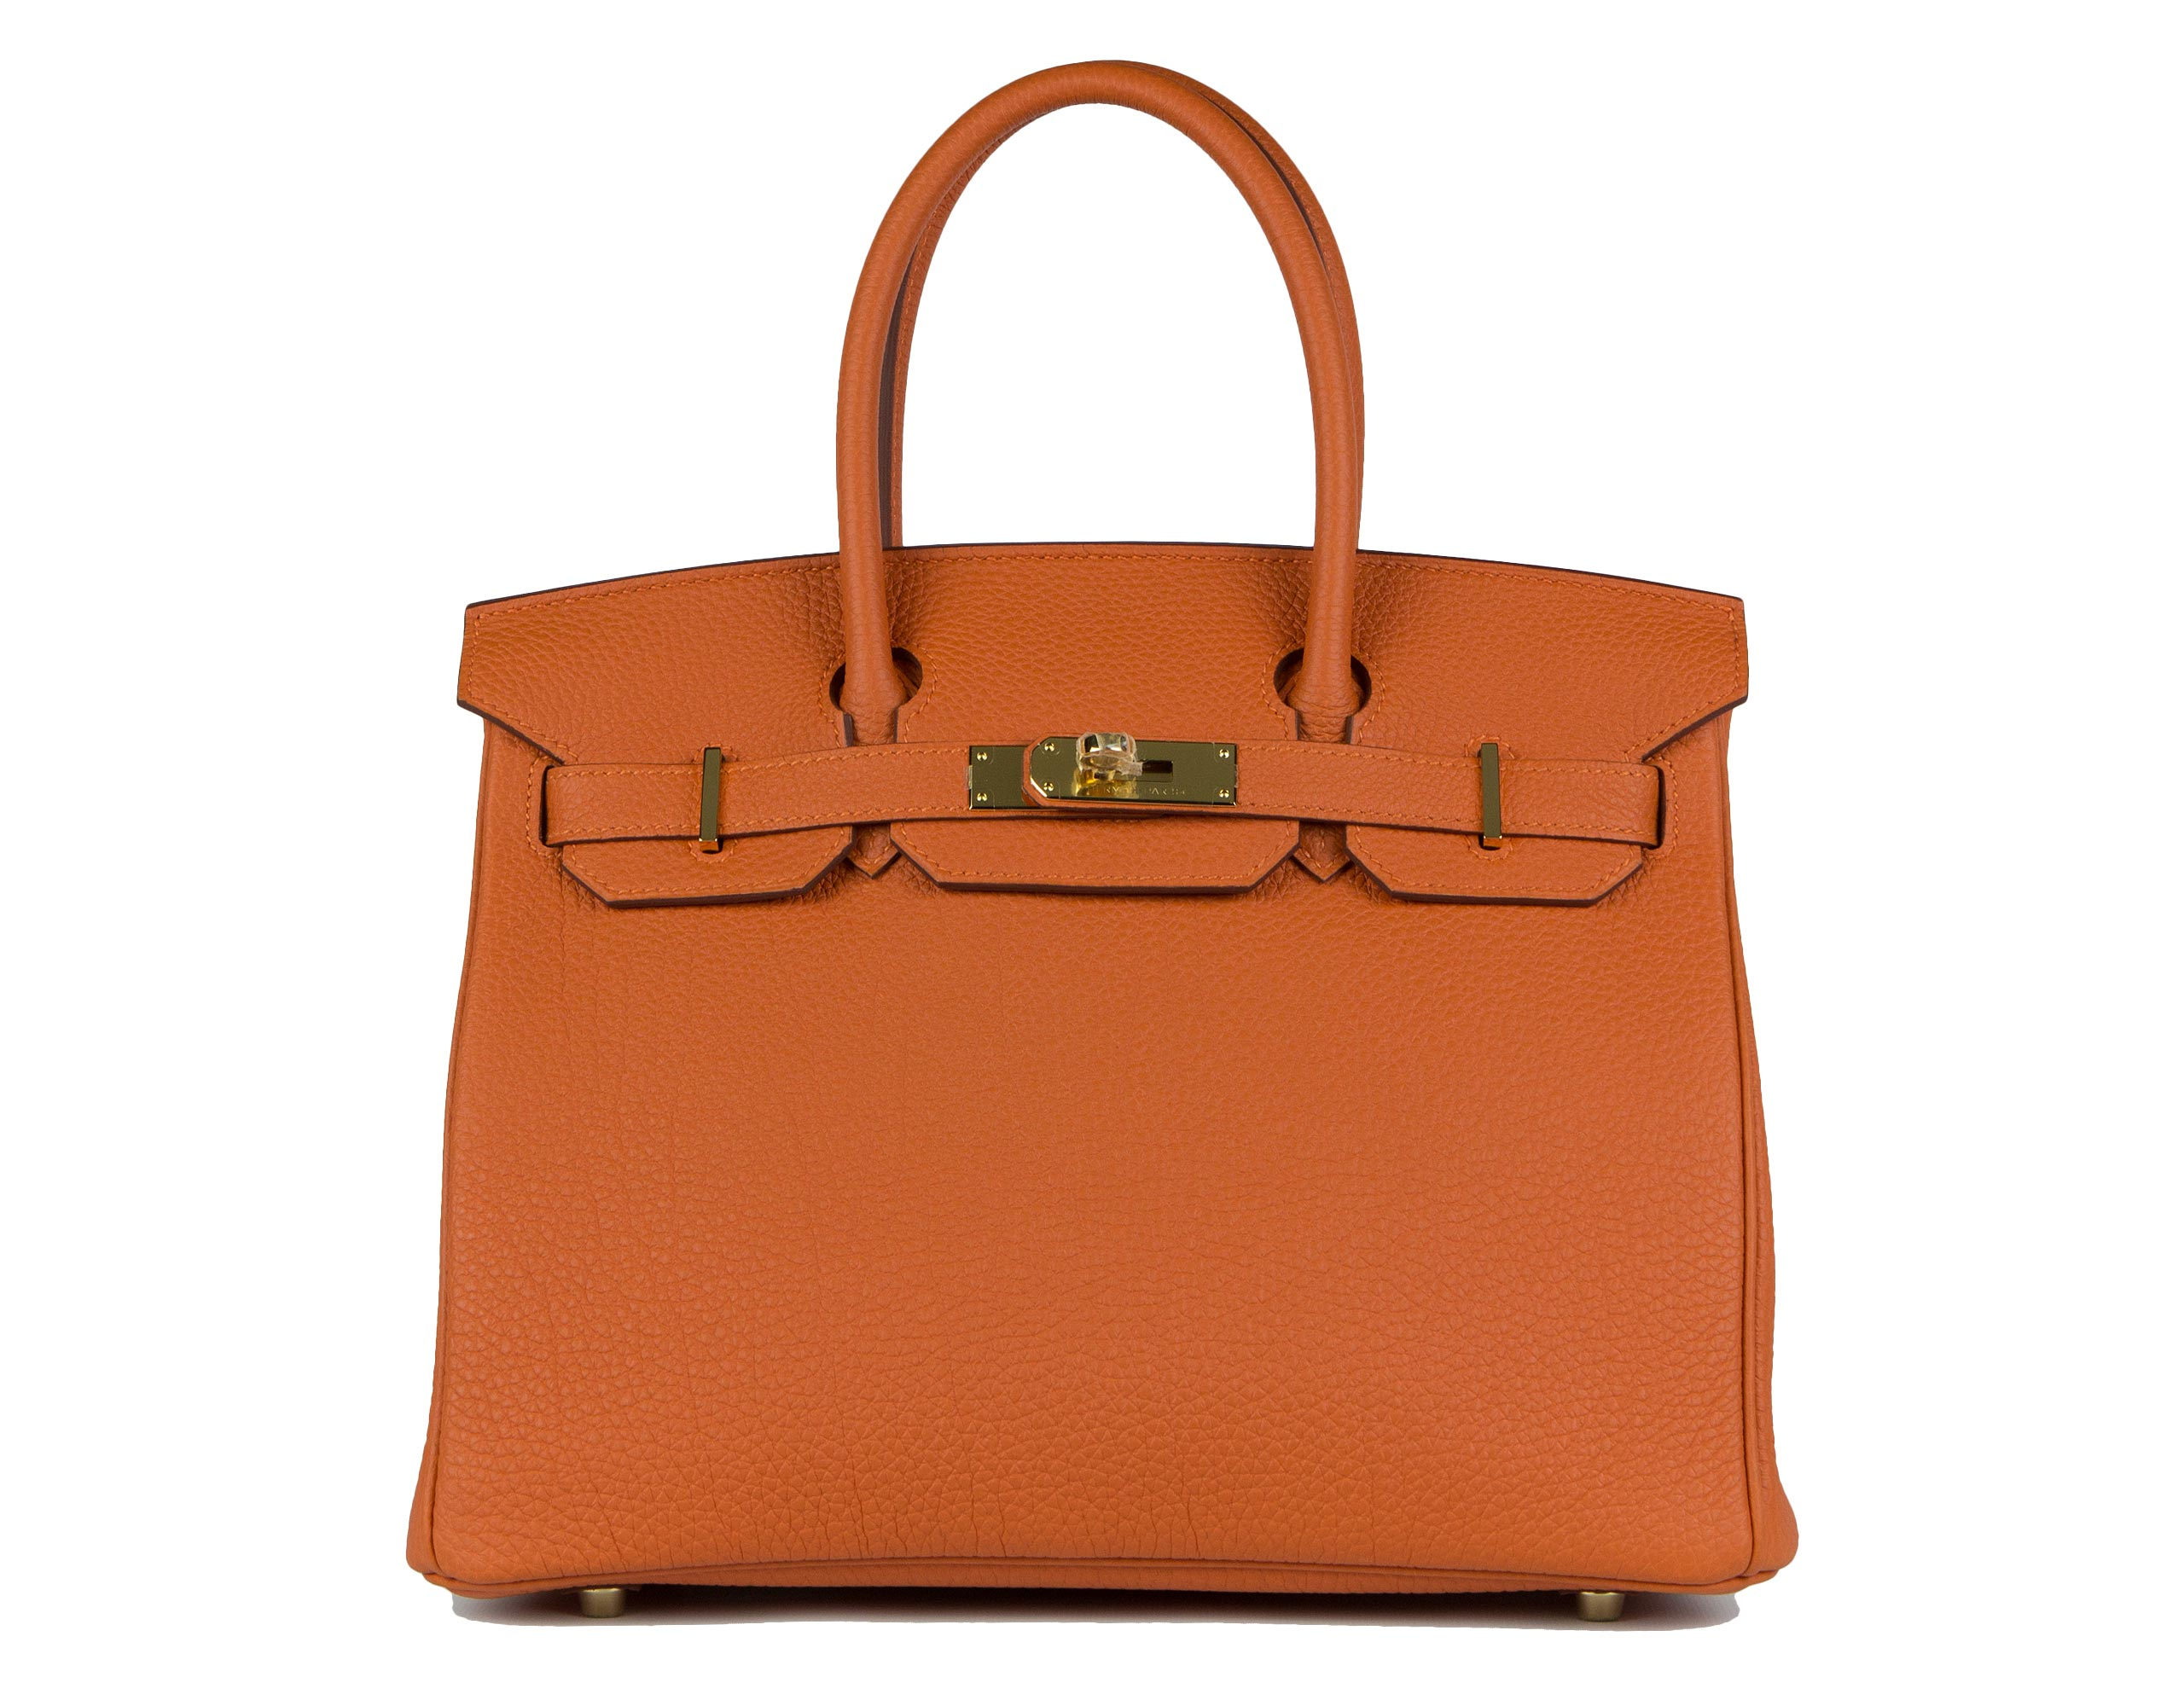 Hermes Bag Birkin Orange Togo 30cm B125 Front